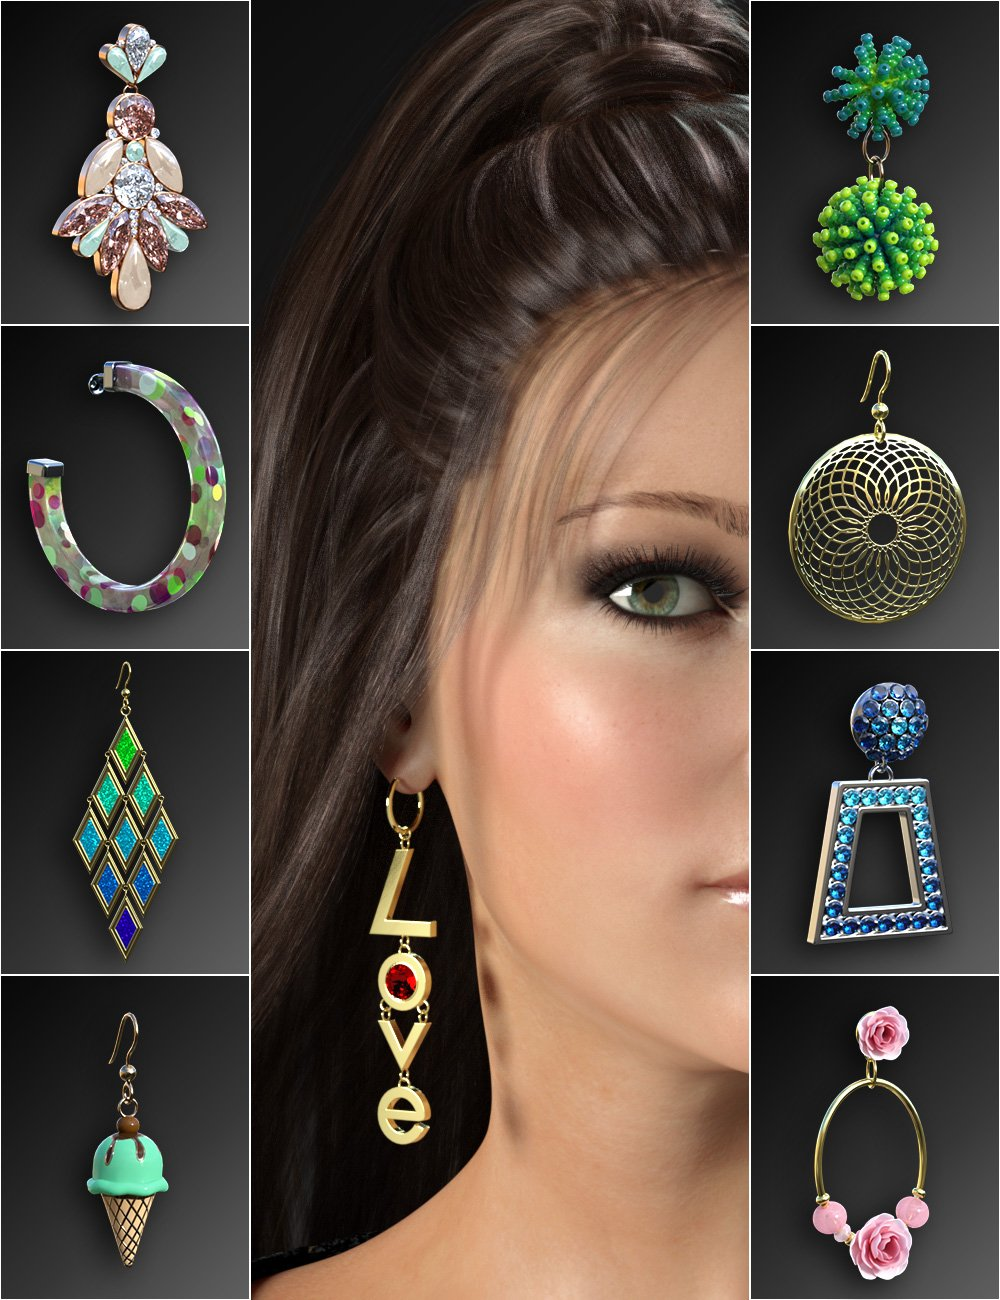 Statement Earrings Megapack for Genesis 8 and 8.1 Females by: esha, 3D Models by Daz 3D